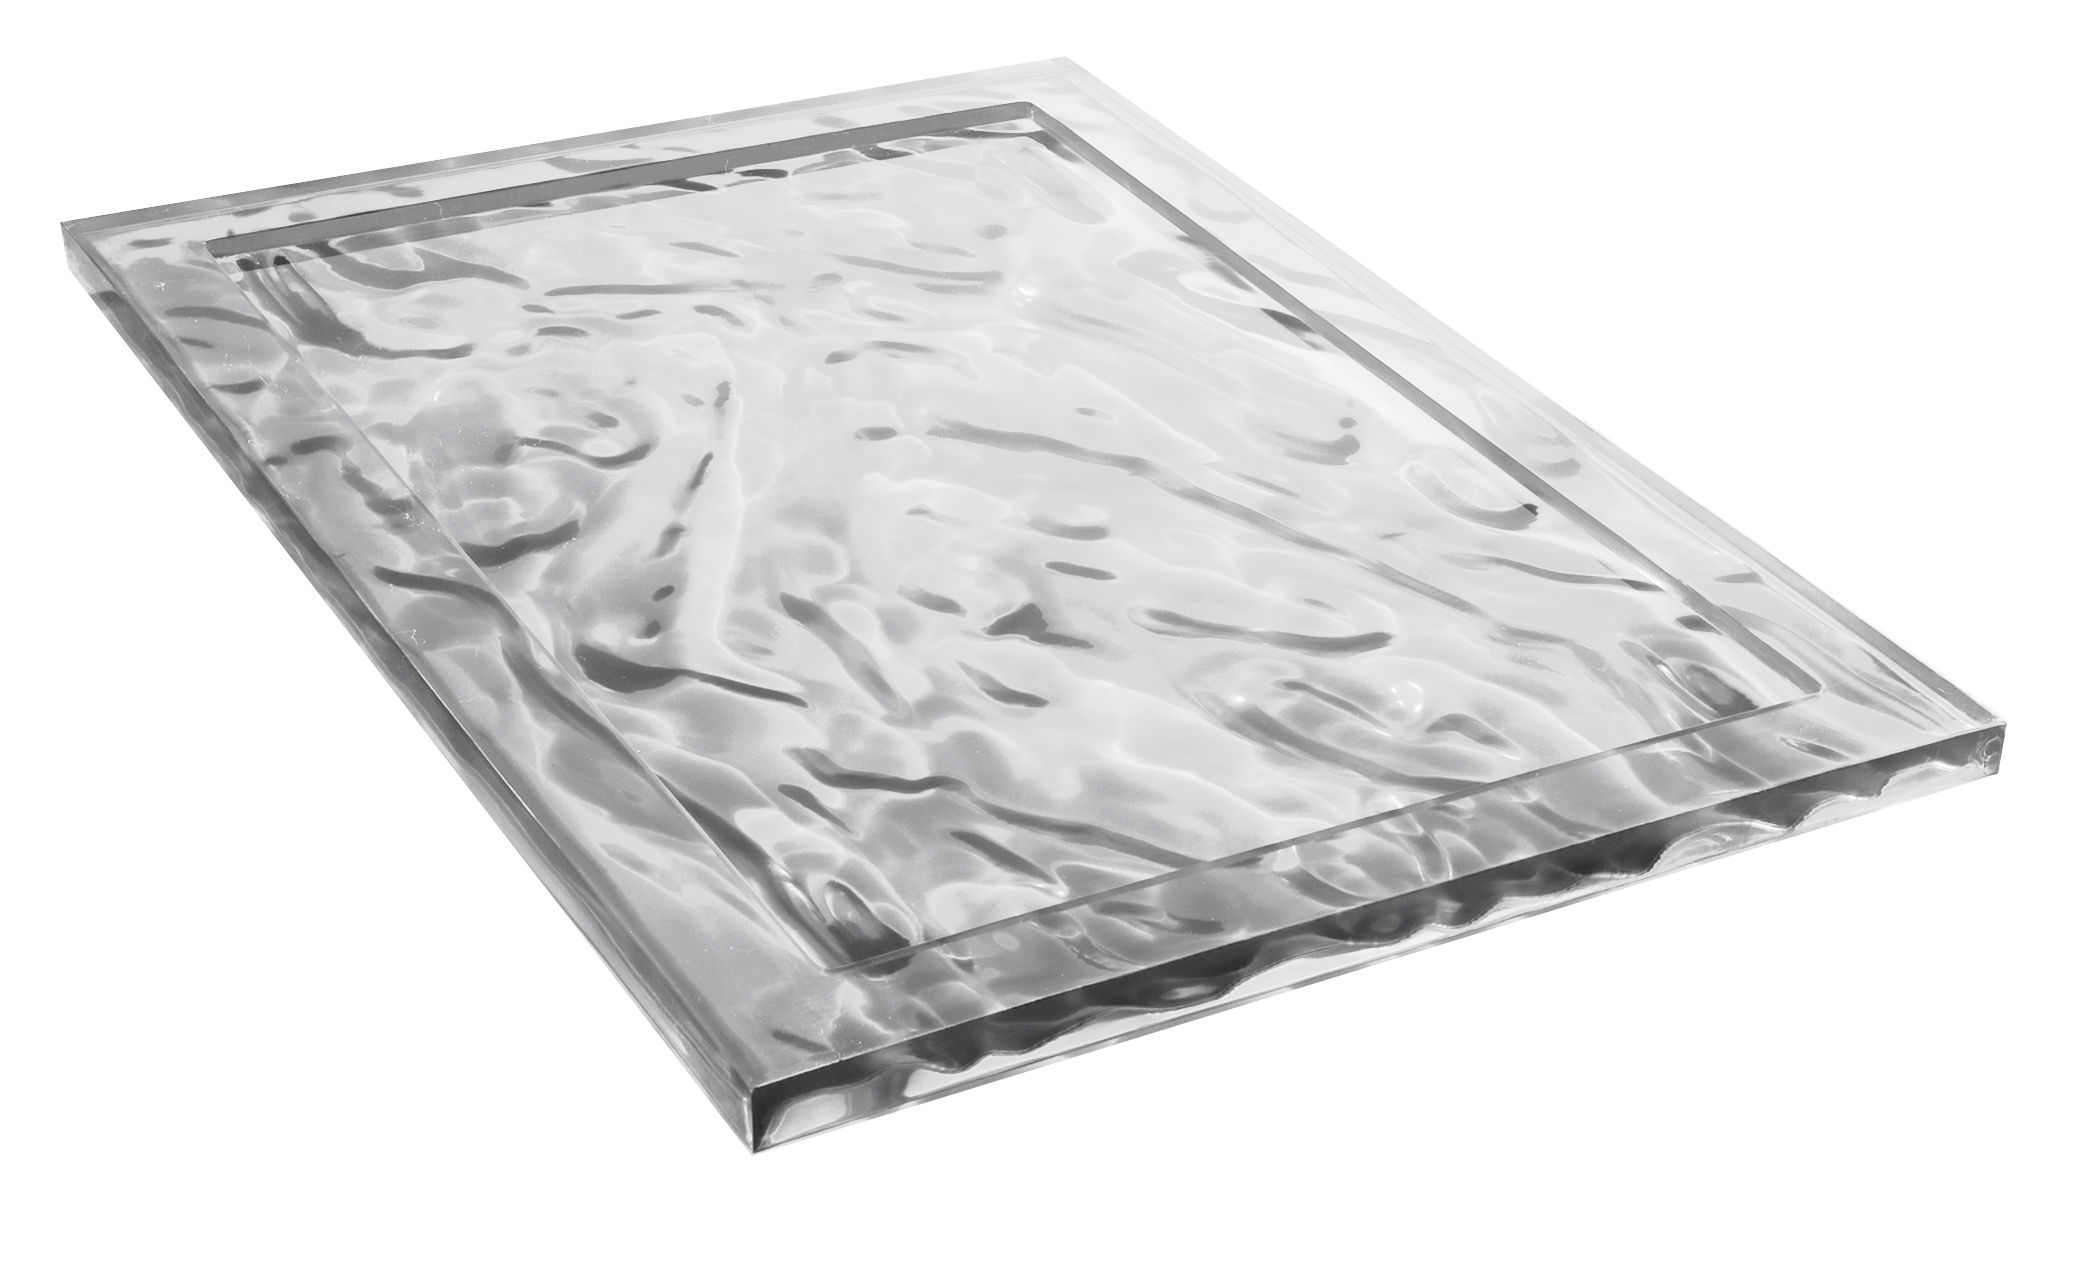 Tableware - Trays - Dune Tray - 46 x 32 cm by Kartell - Clear - Technopolymer